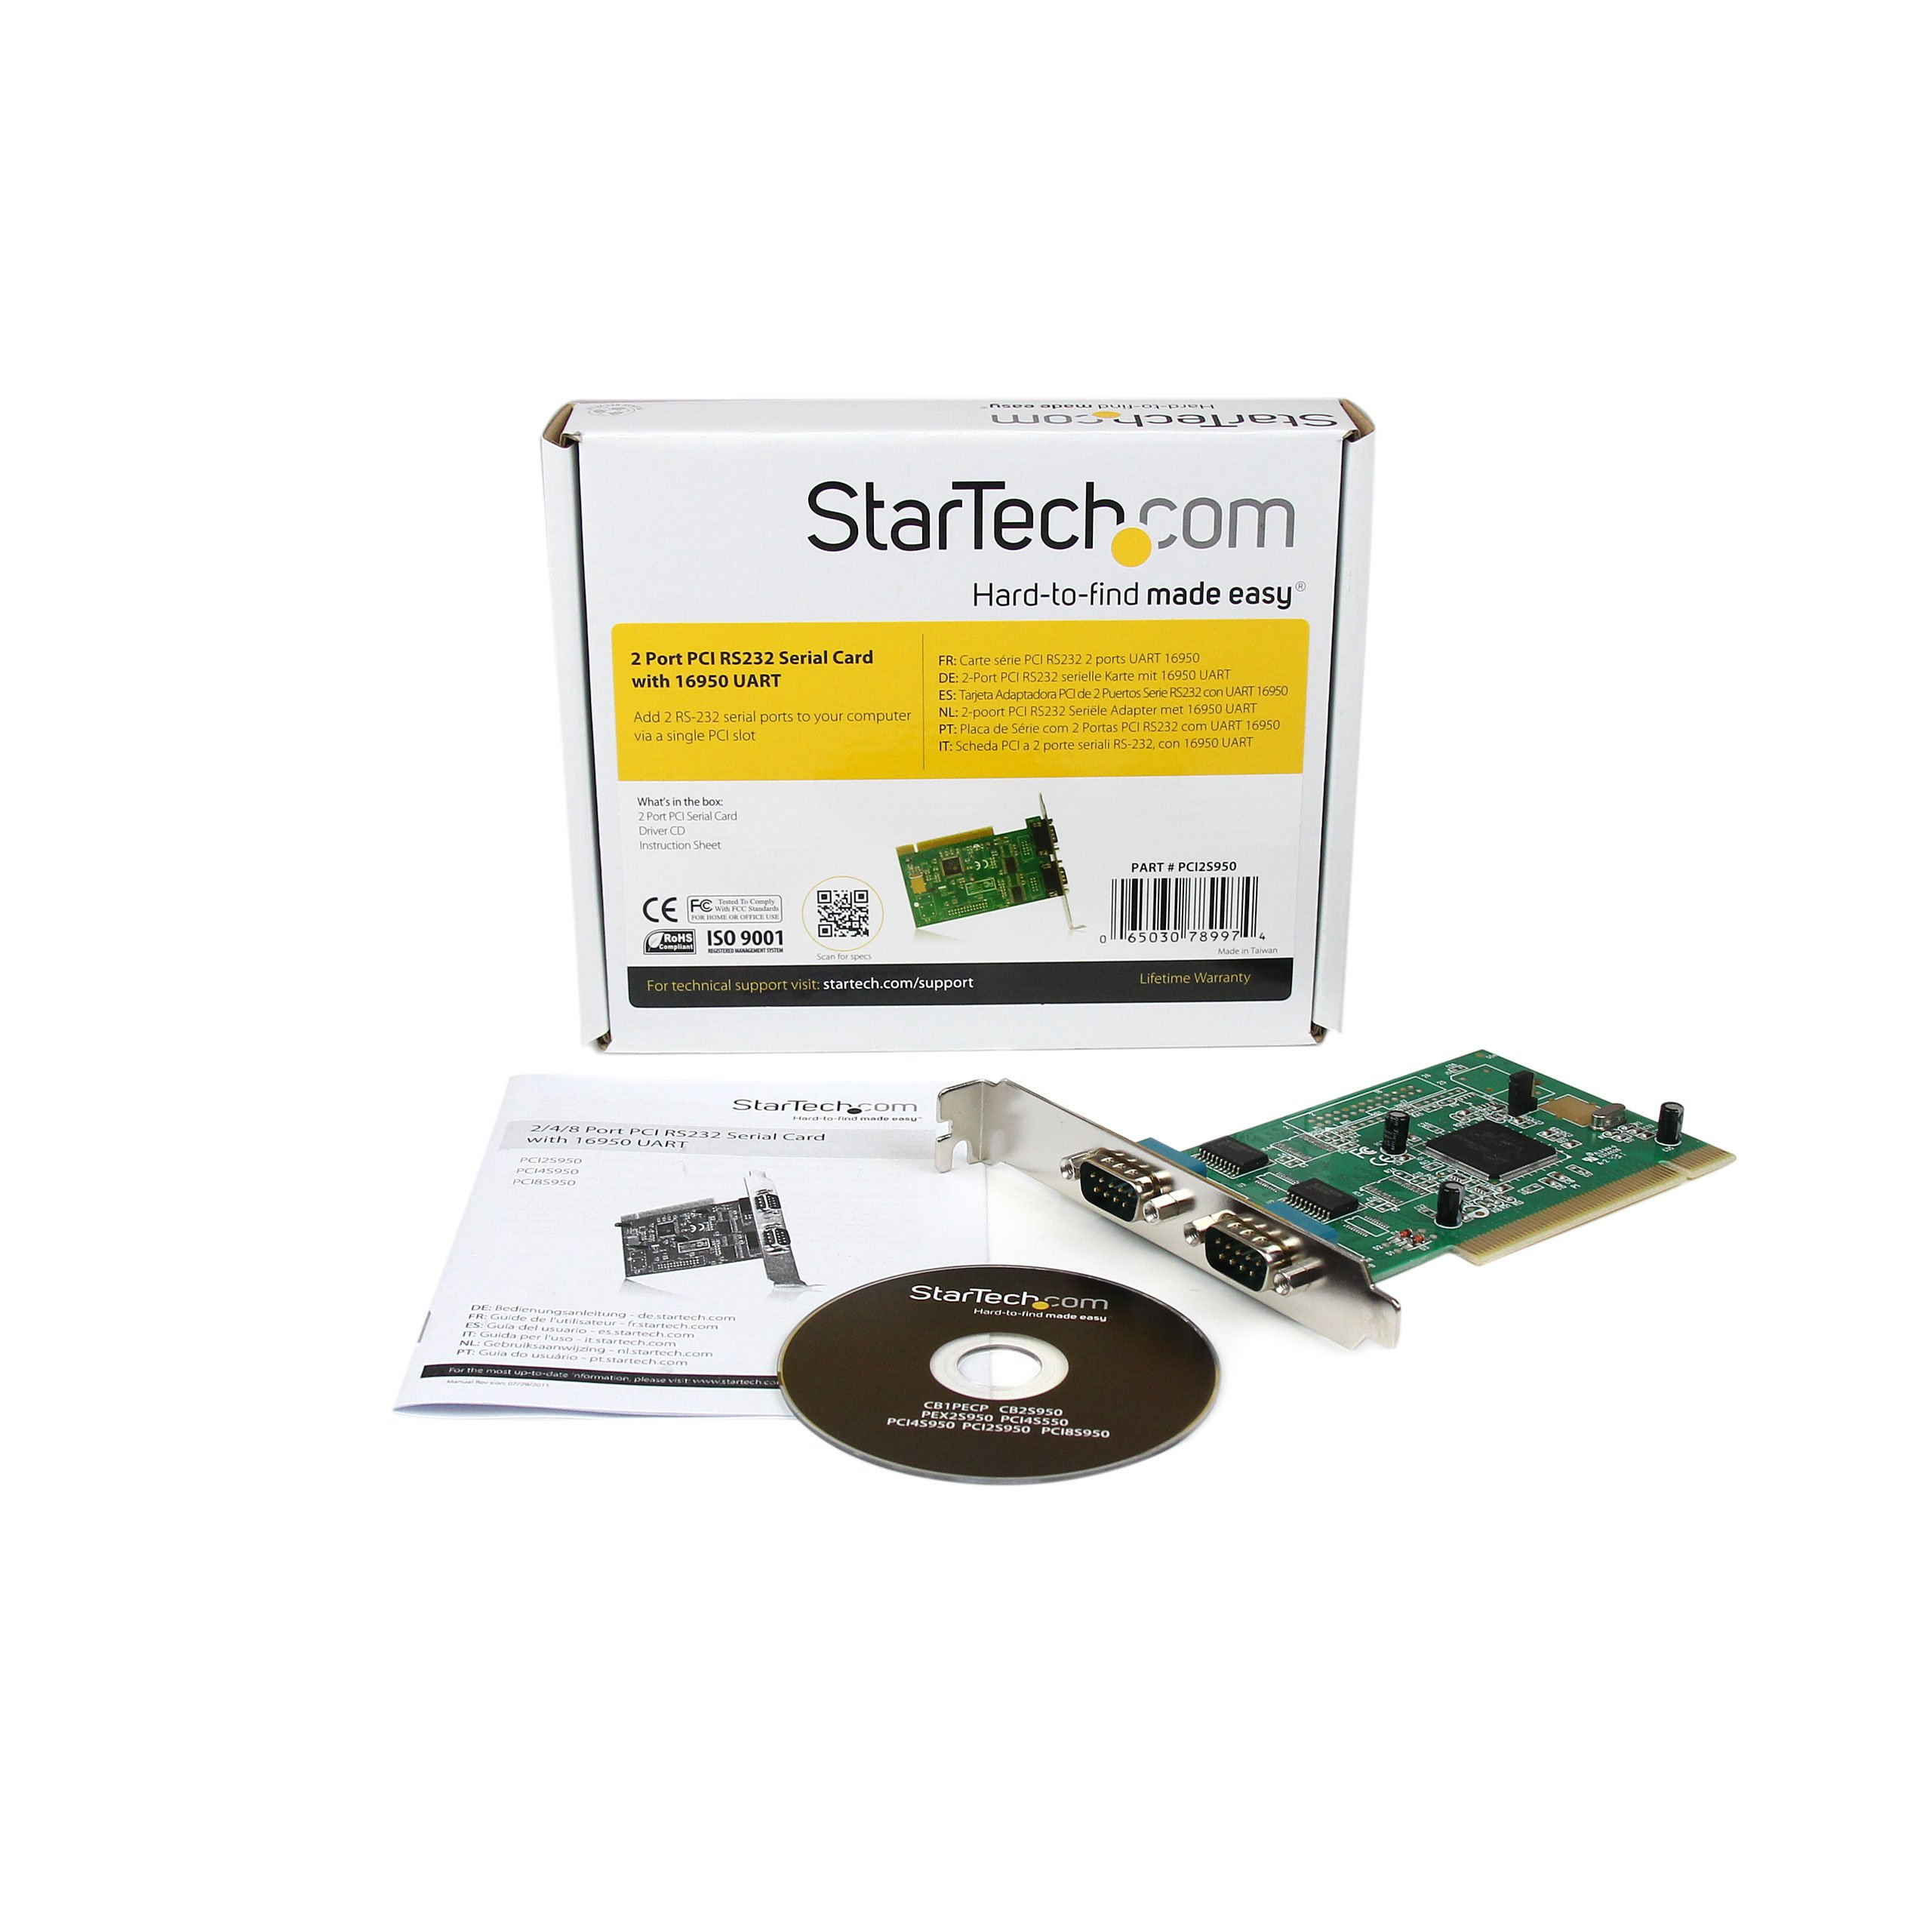 StarTech.com 2 Port PCI RS232 Serial Adapter Card with 16950 UART (PCI2S950)